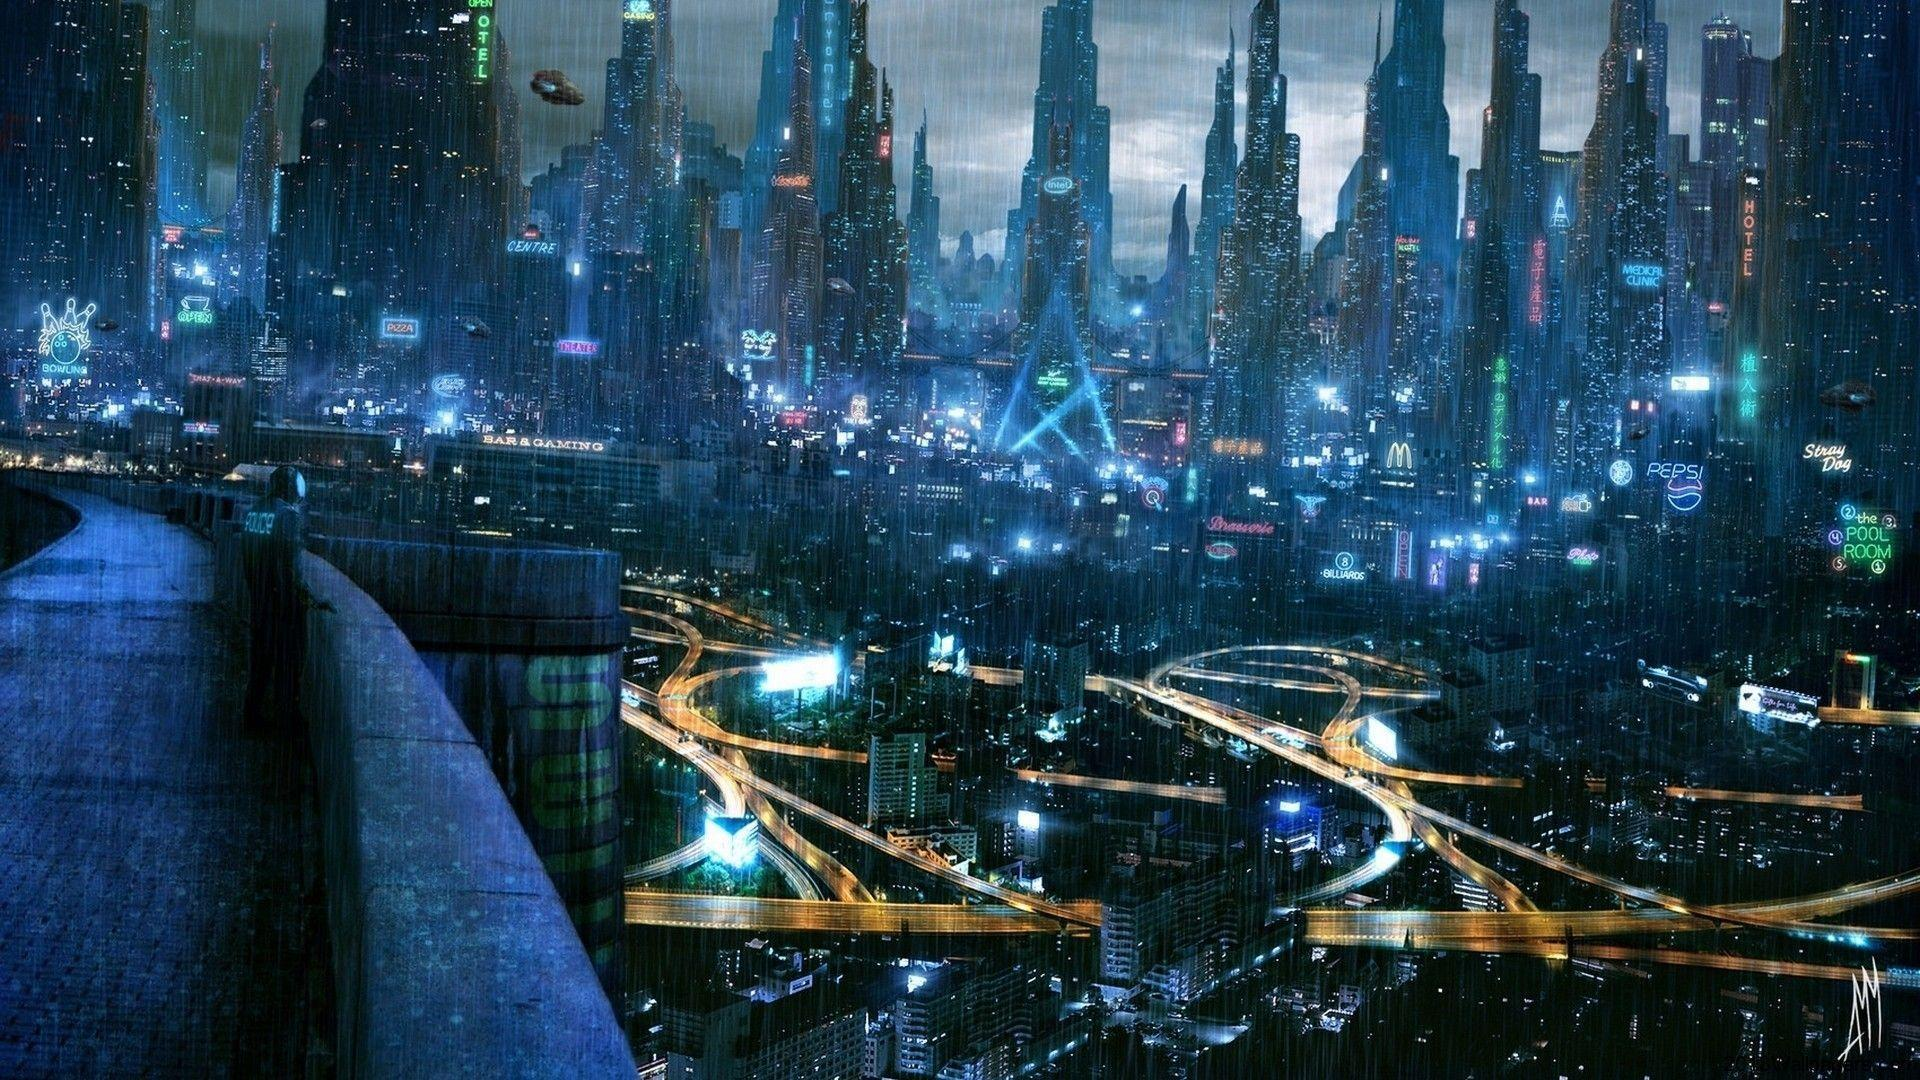 Wallpapers For Futuristic City Wallpaper 1920x1080